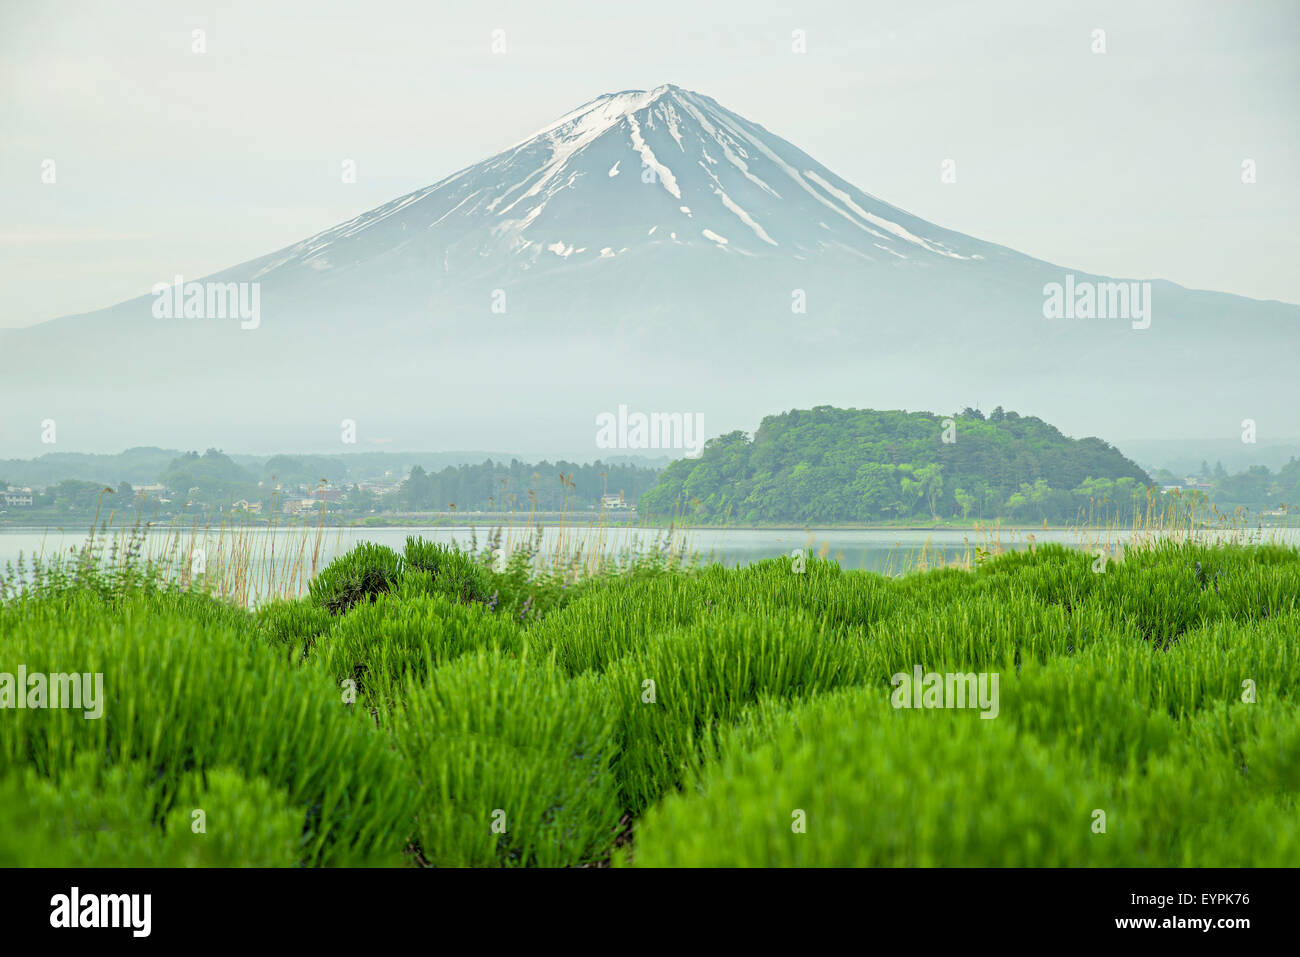 Mt fuji in morning at kawaguchi, Japan - Stock Image